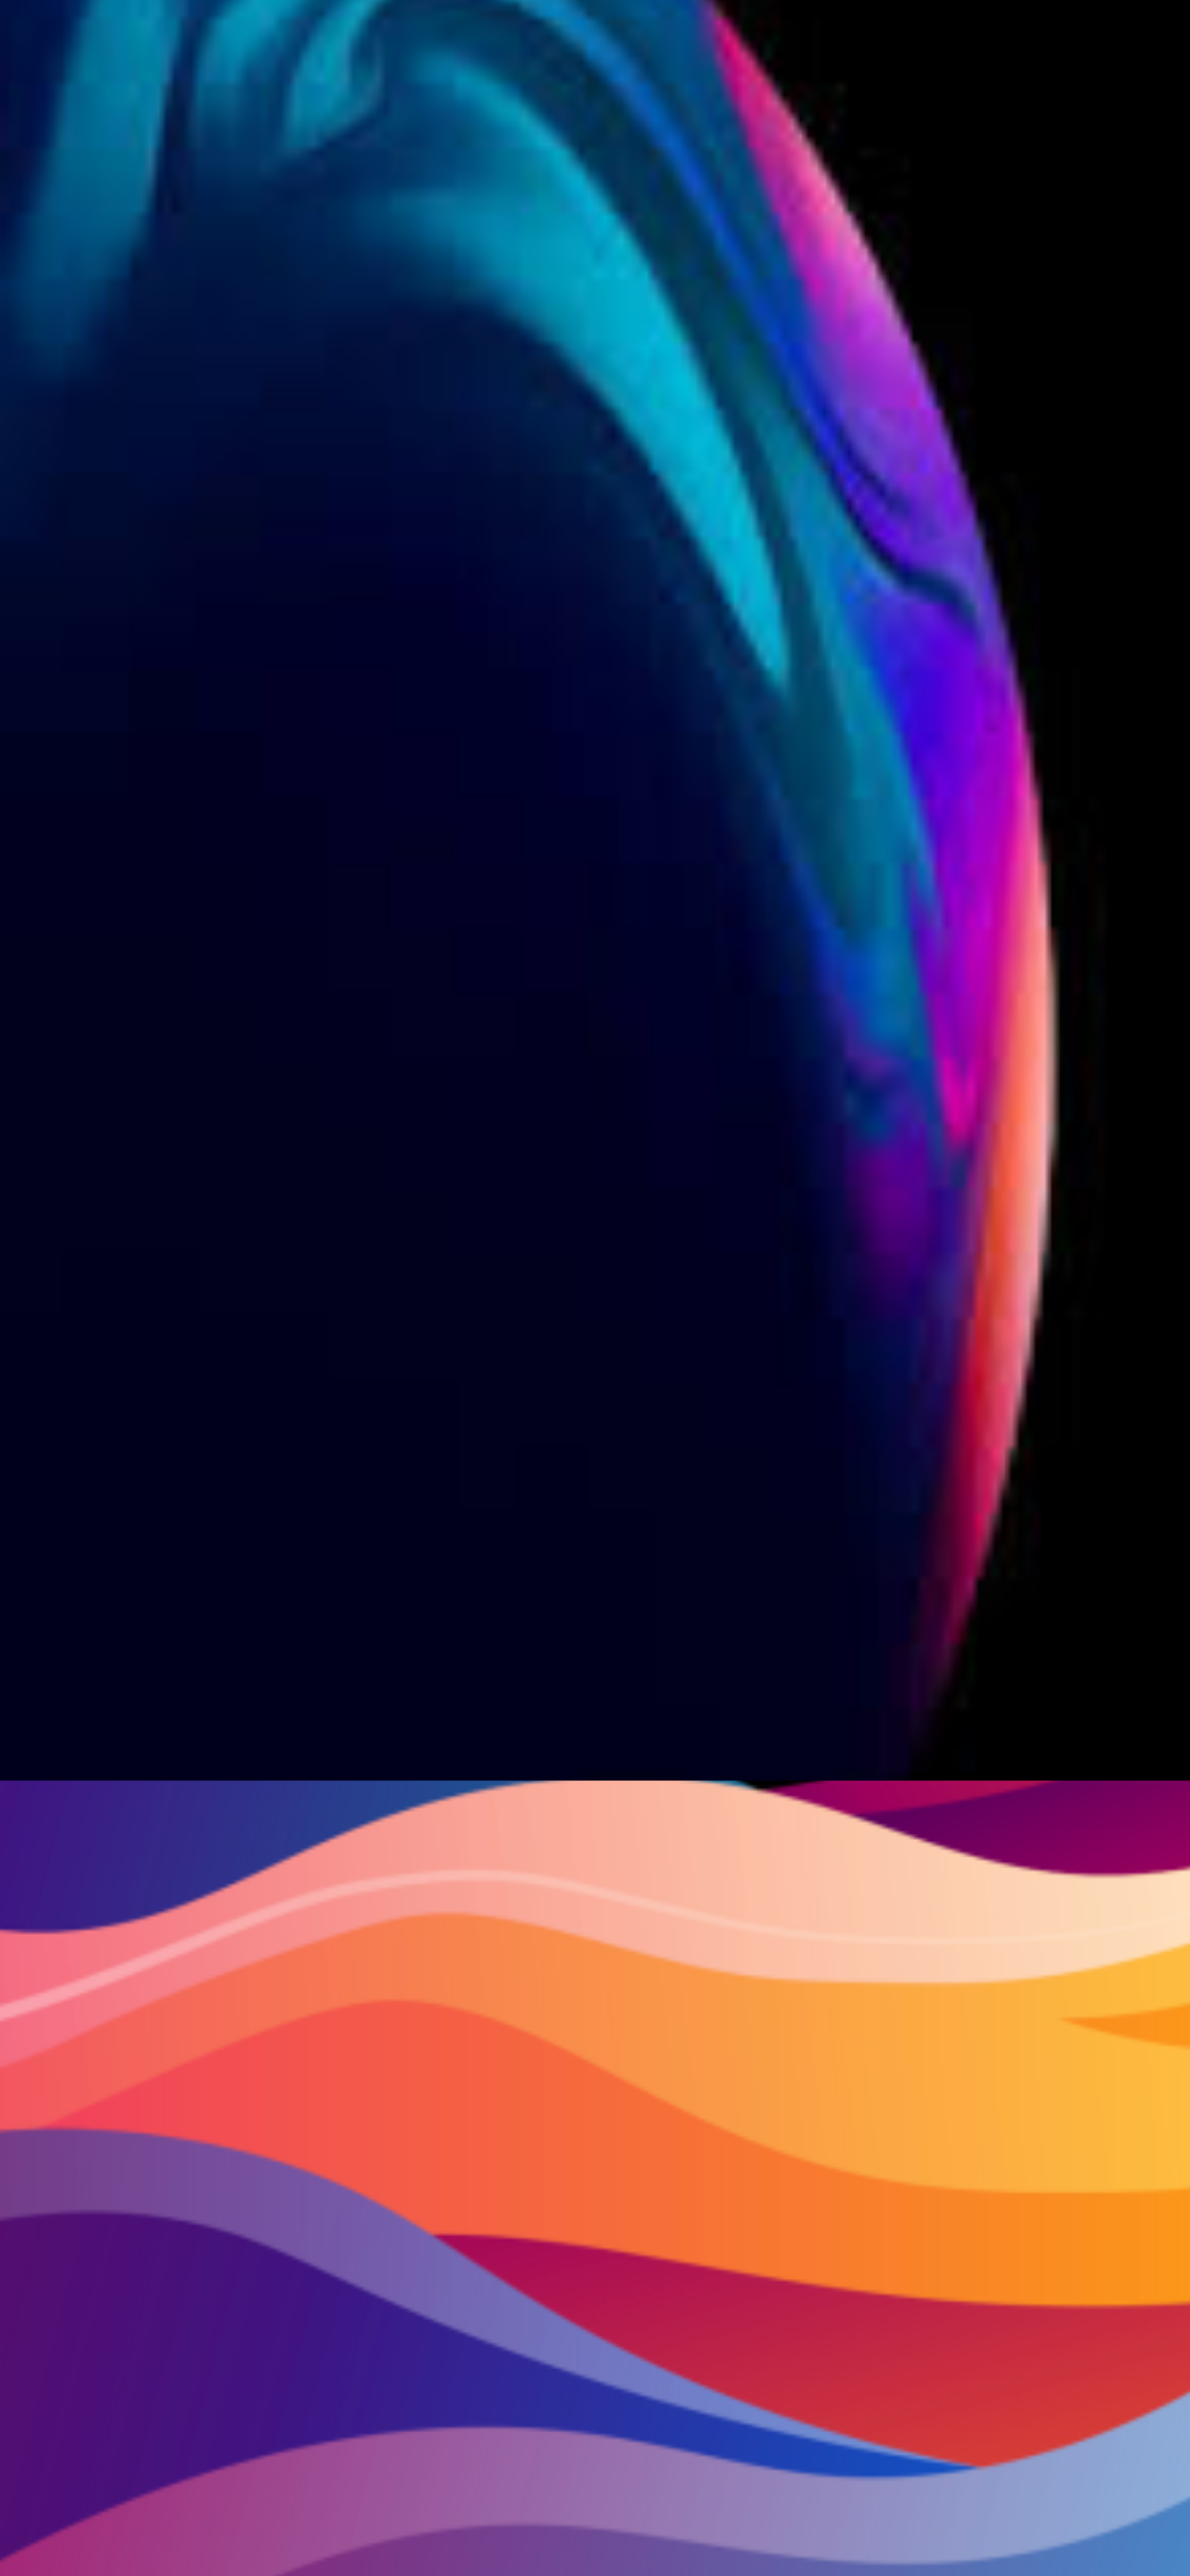 Iphone 12 Pro Wallpapers Wallpaper Cave